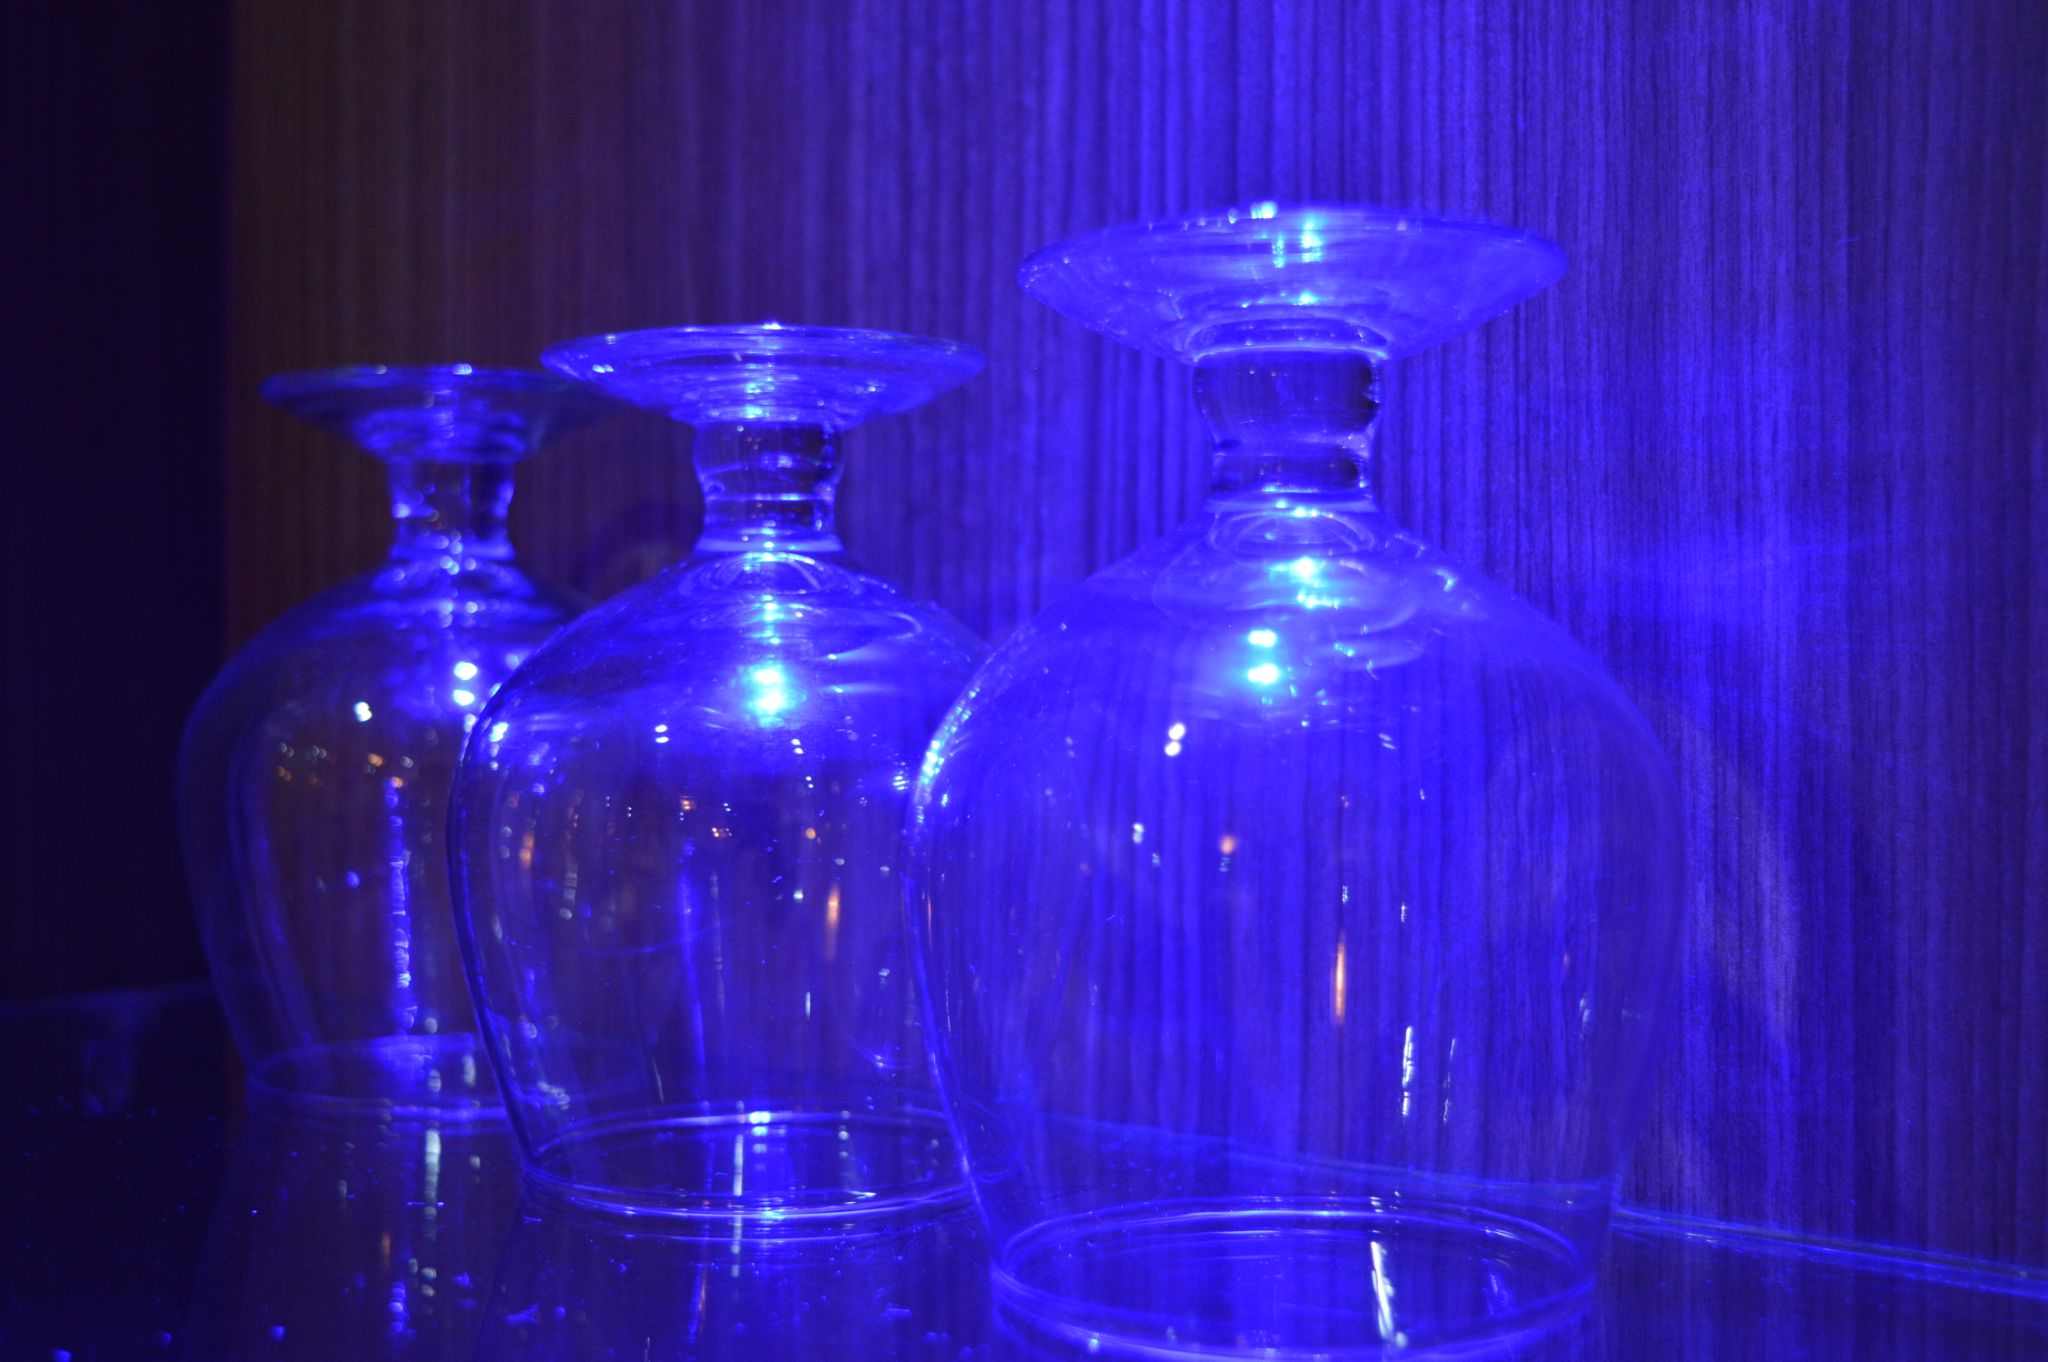 Glass in light by Sudharshan